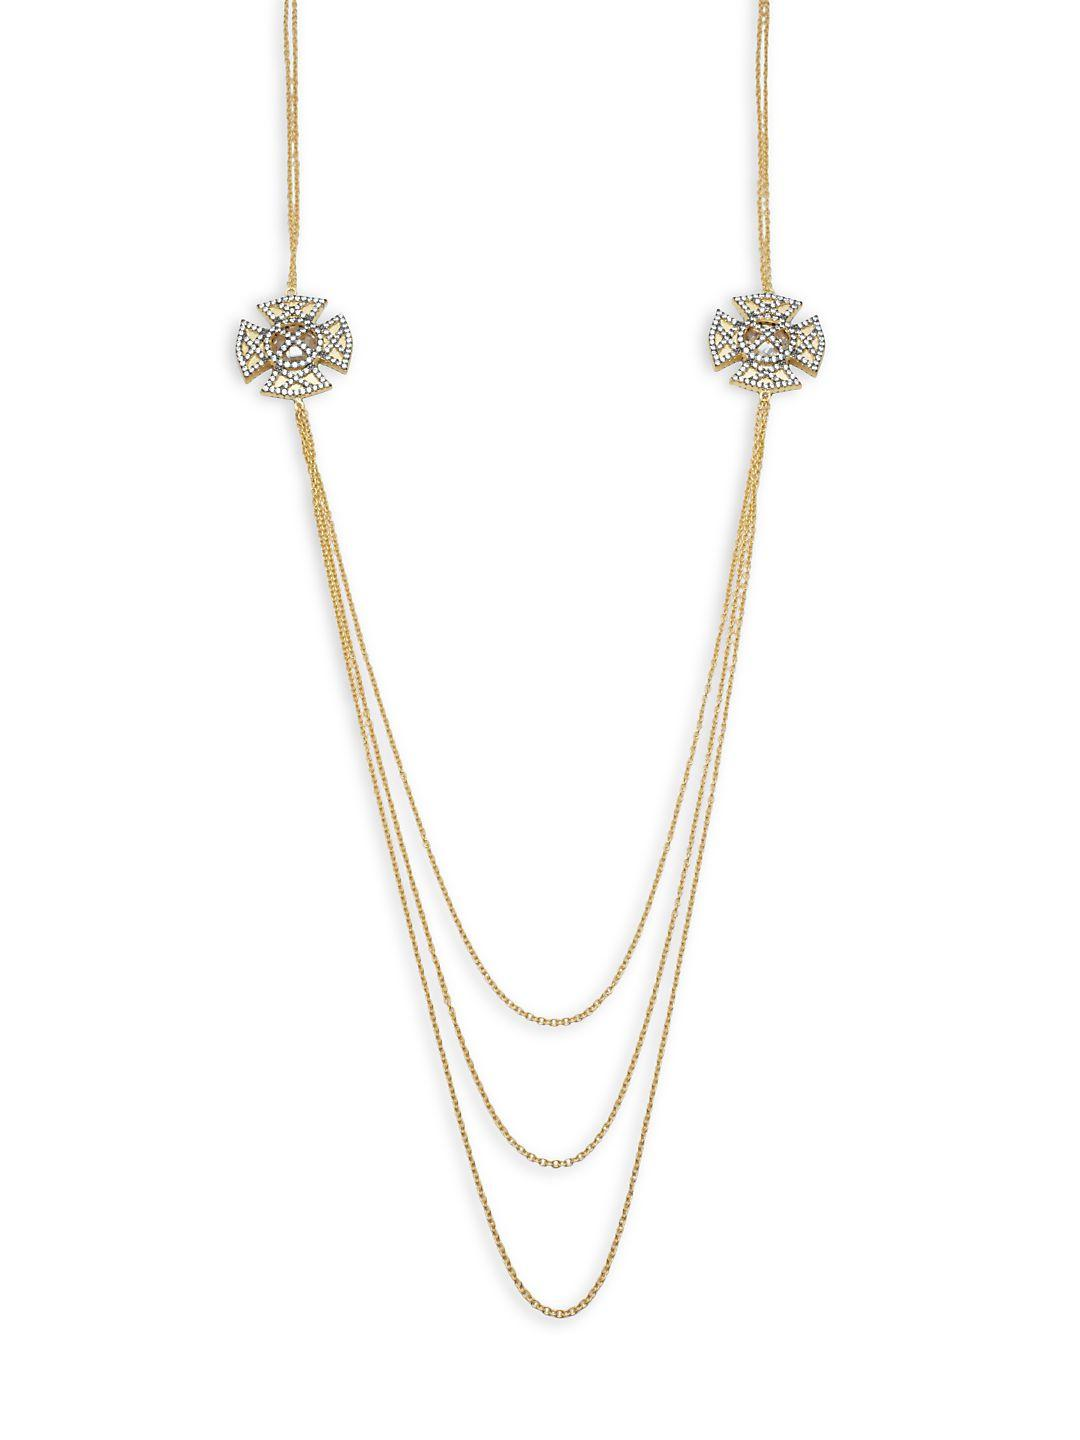 Freida Rothman Classic Cubic Zirconia & 14k Gold-plated Sterling Silver Necklace in Metallic